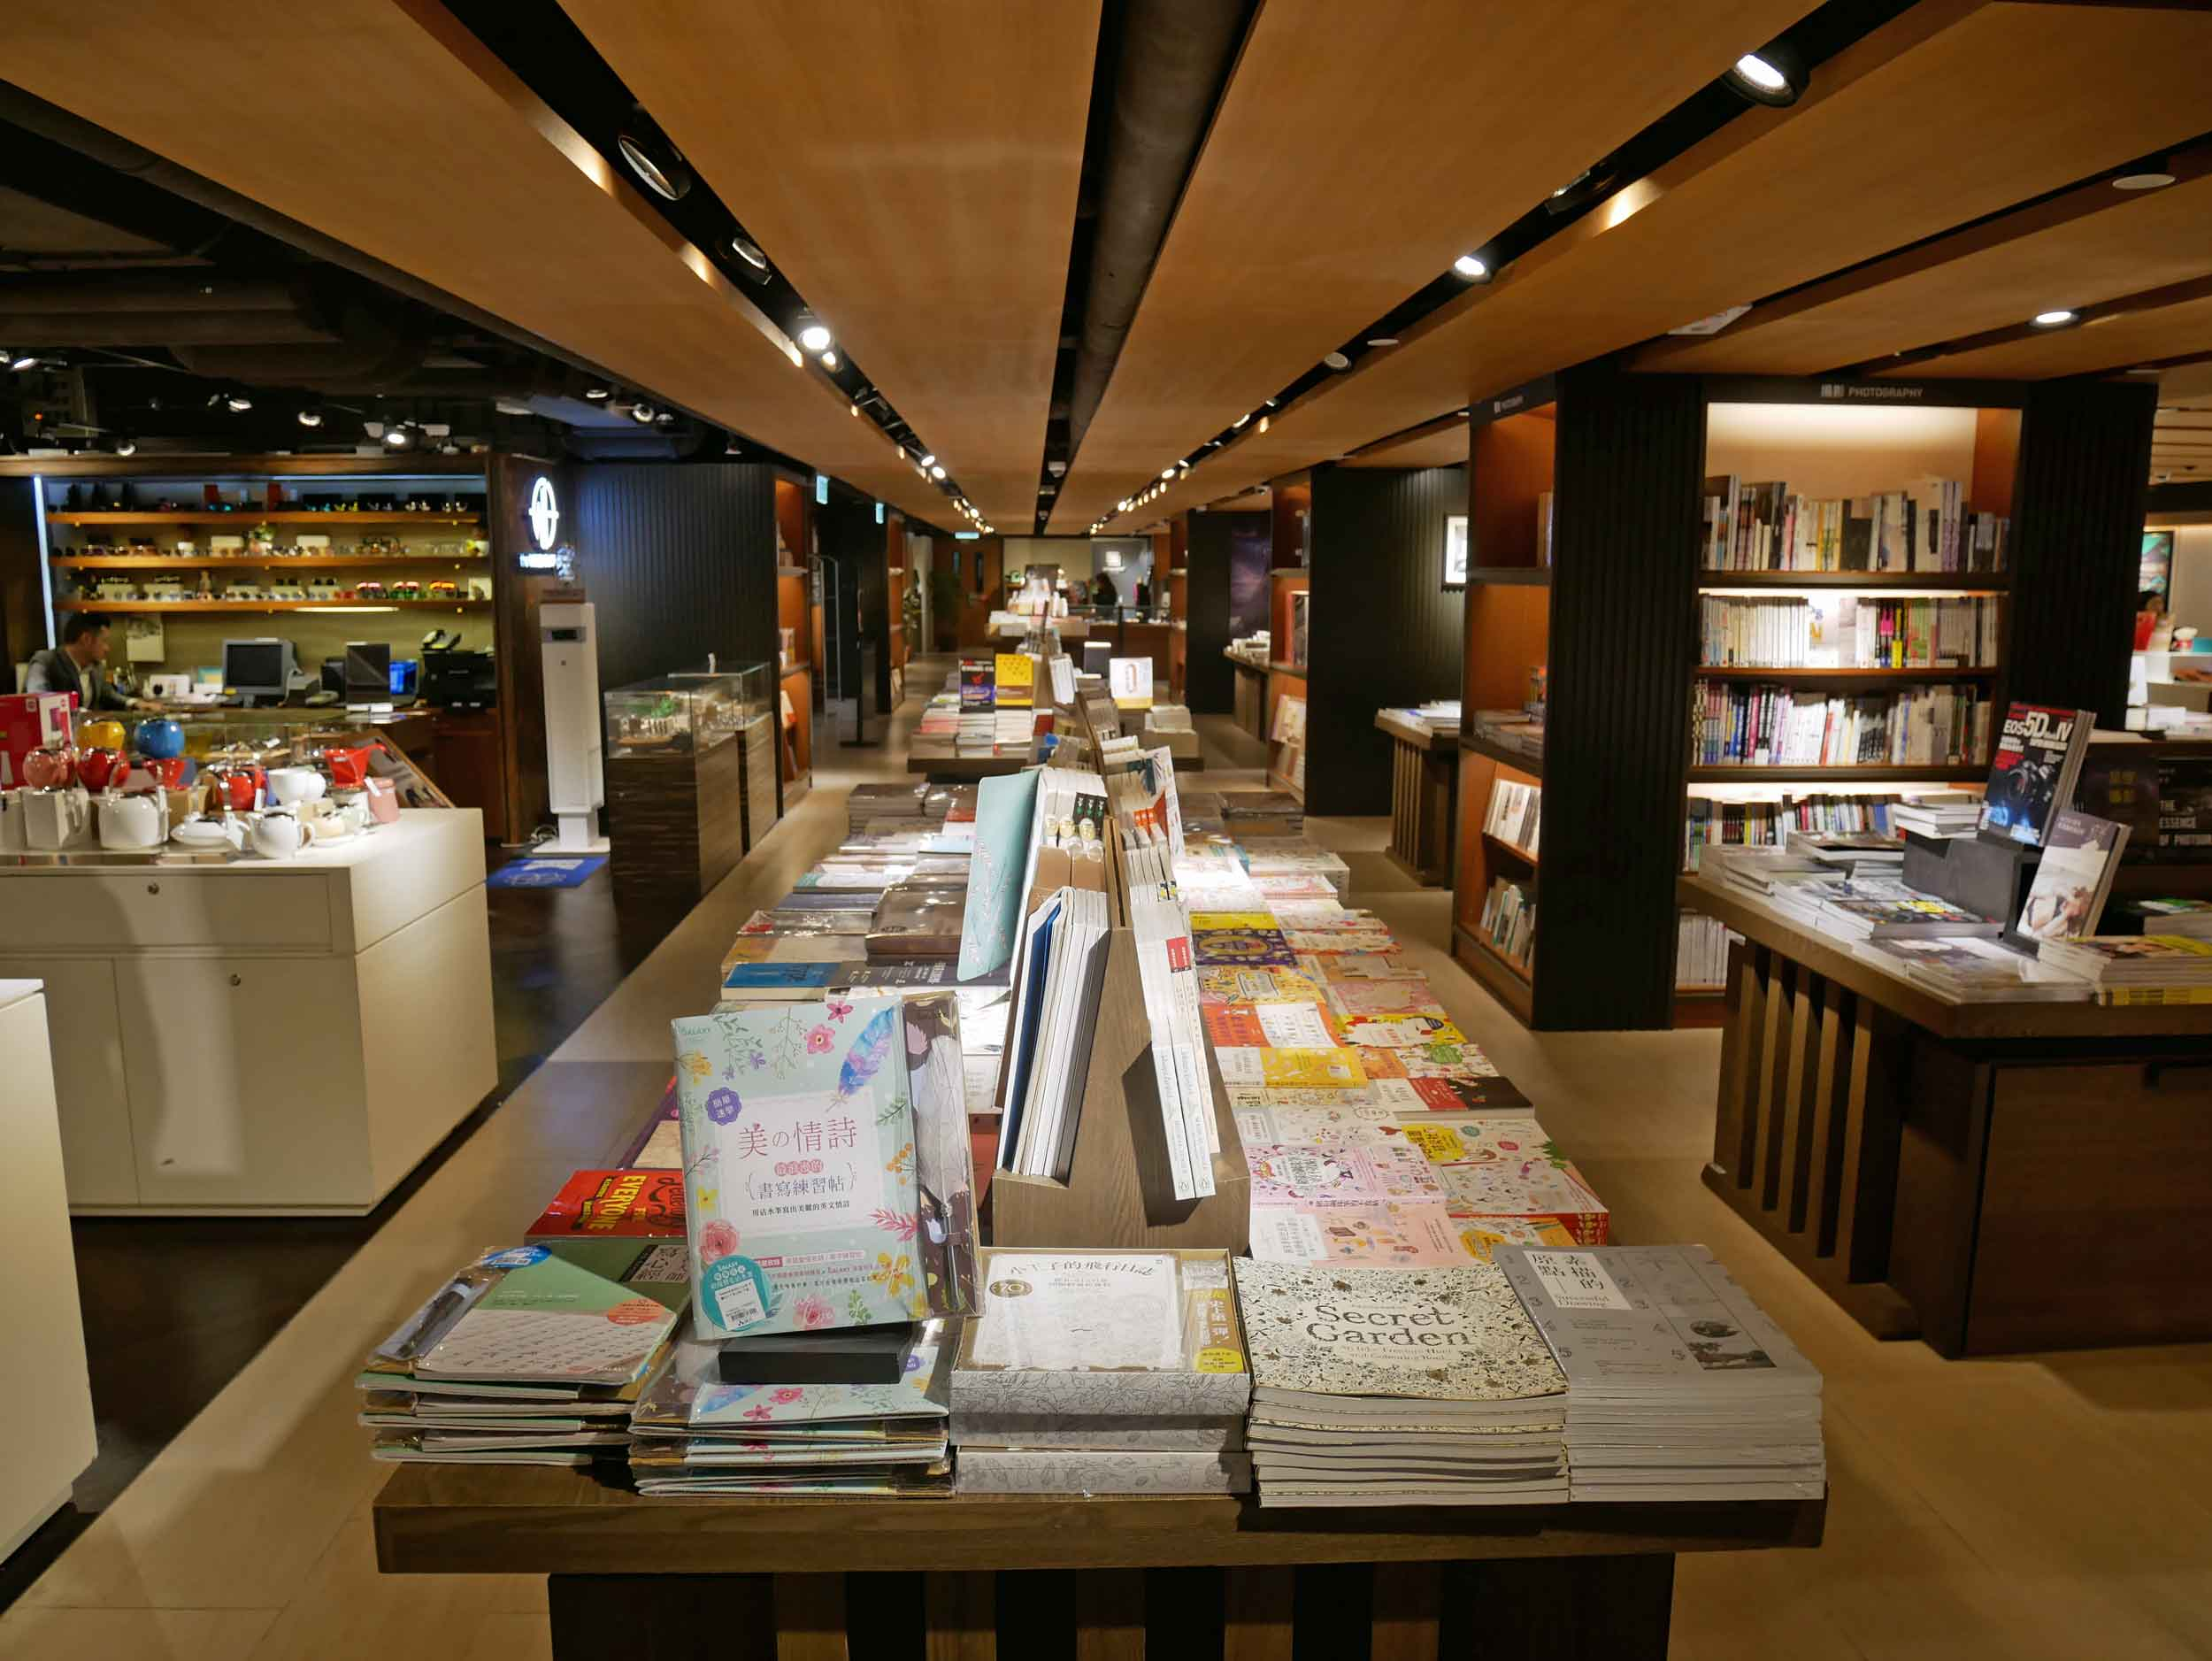 Once we made it to Kowloon, we wandered through the stacks and shops of Eslite bookstore.